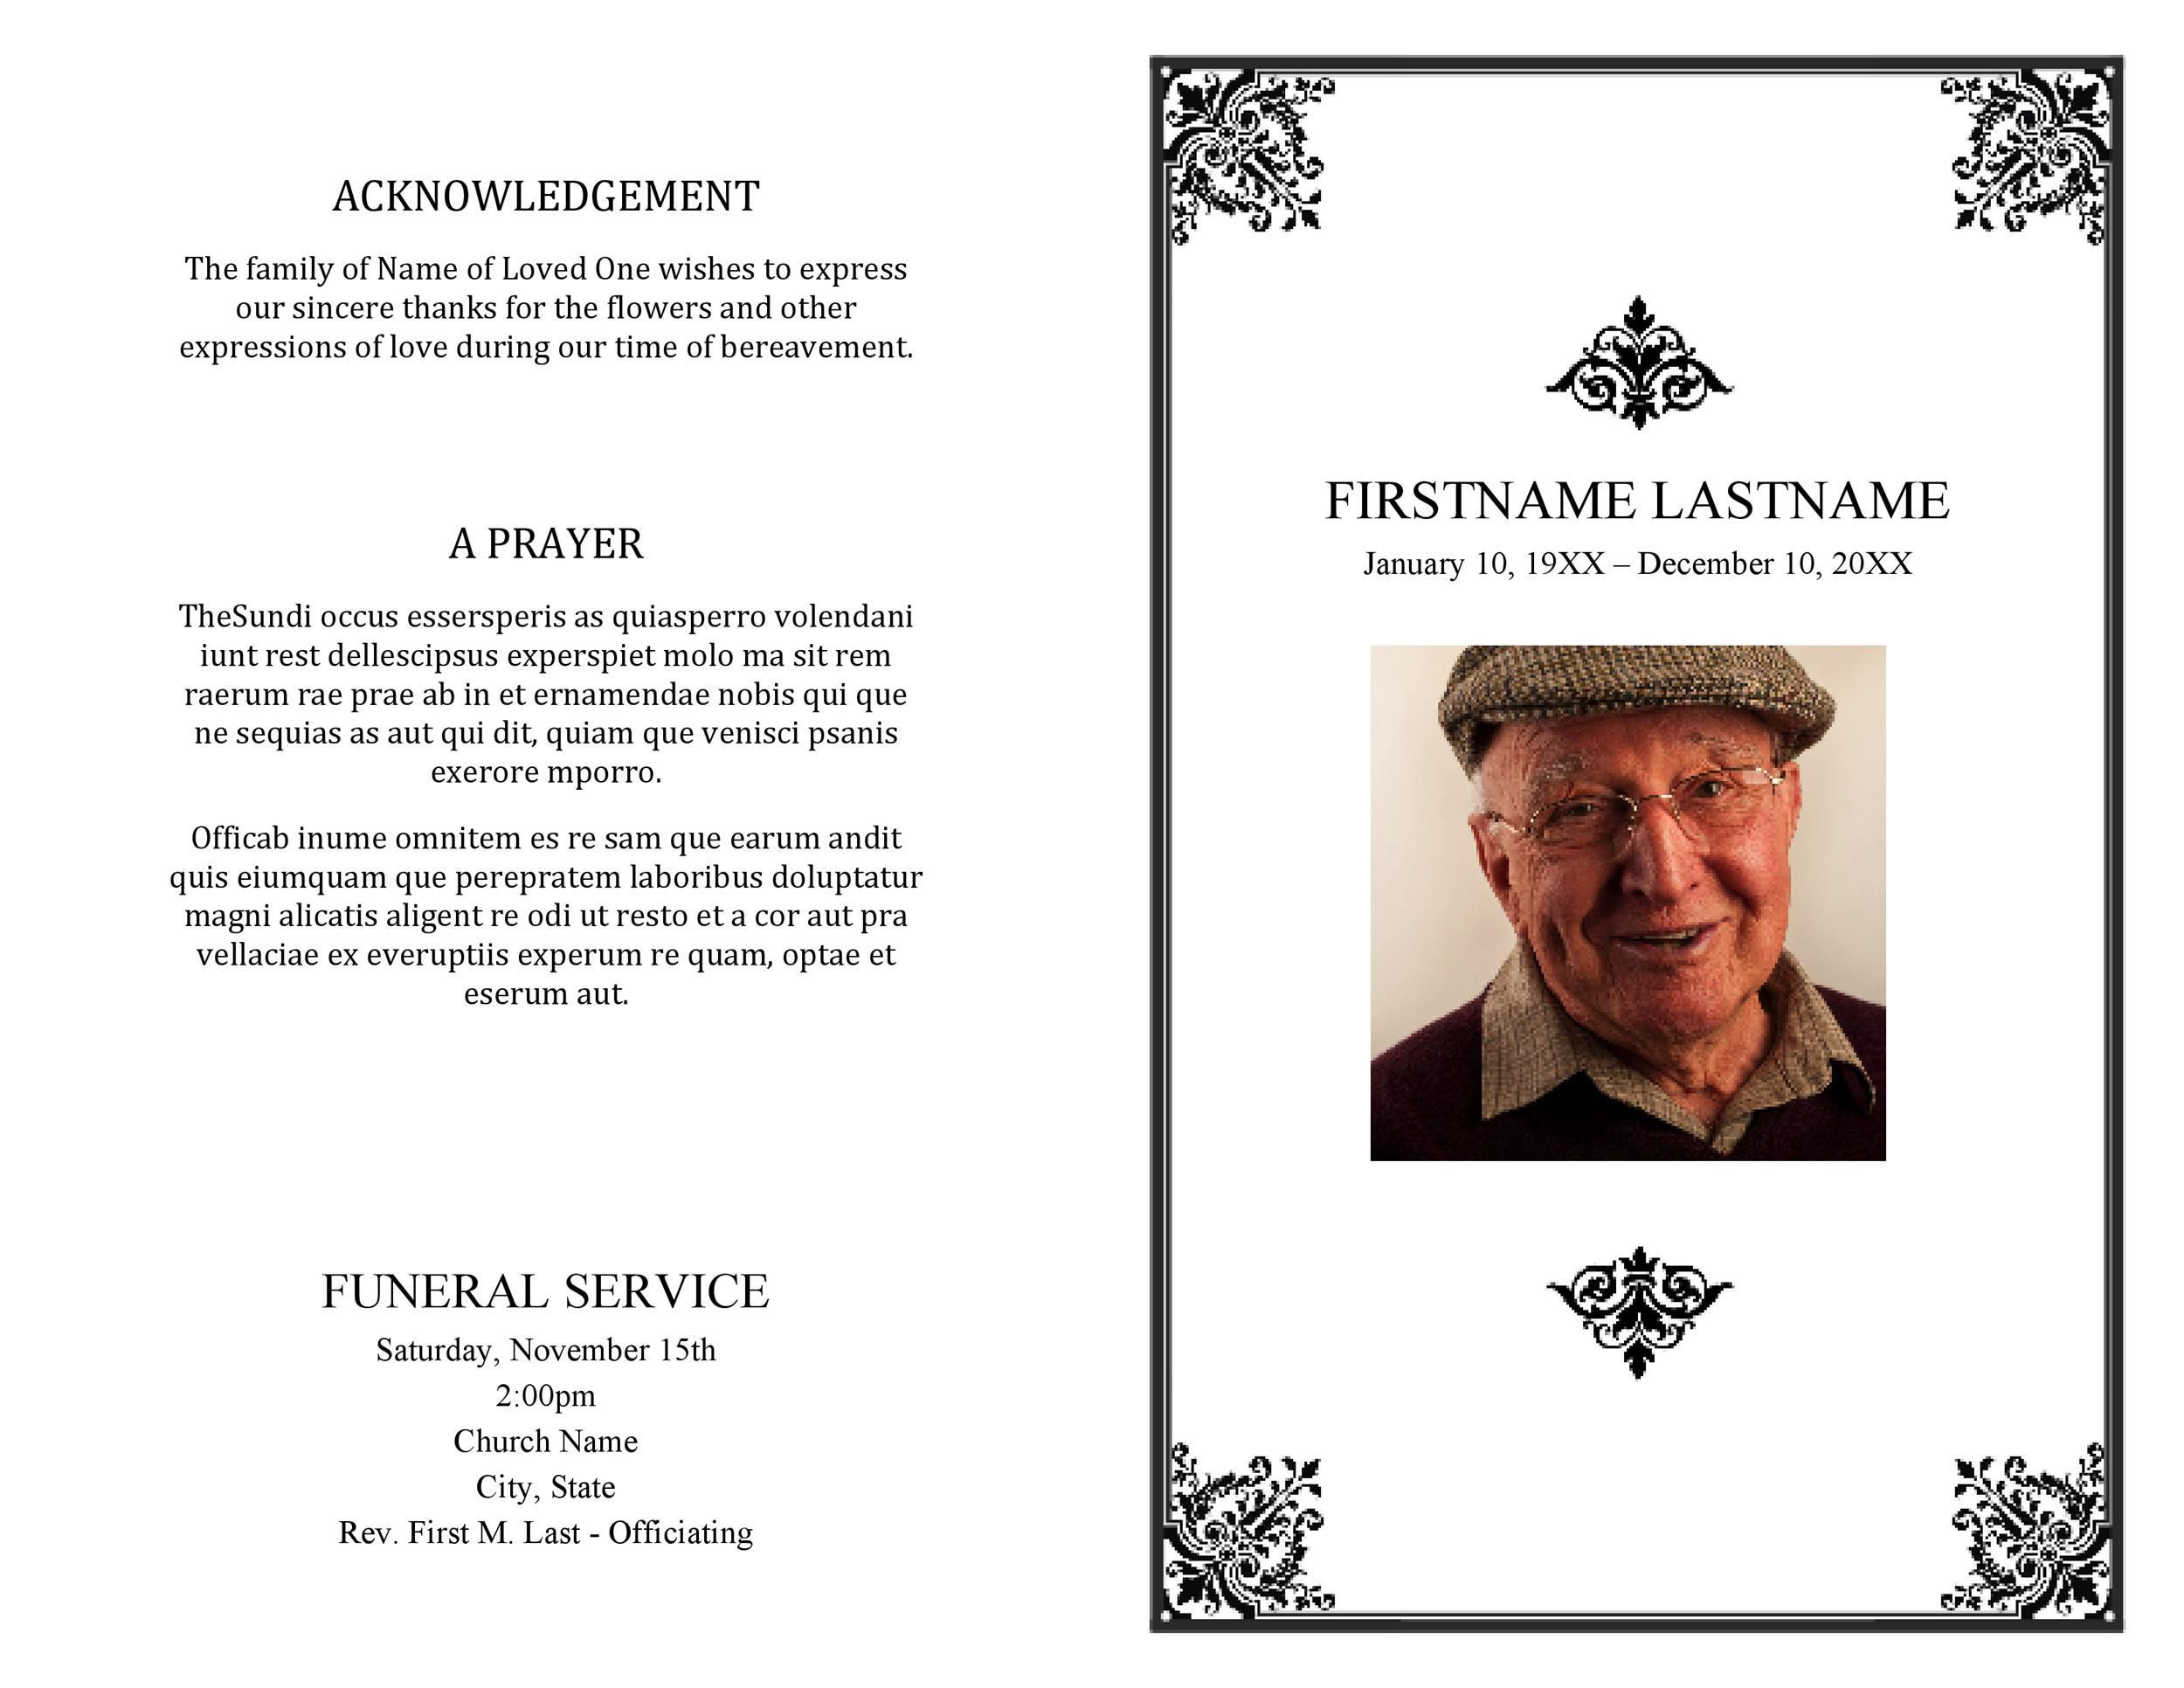 007 Unforgettable Free Download Template For Funeral Program Photo Full